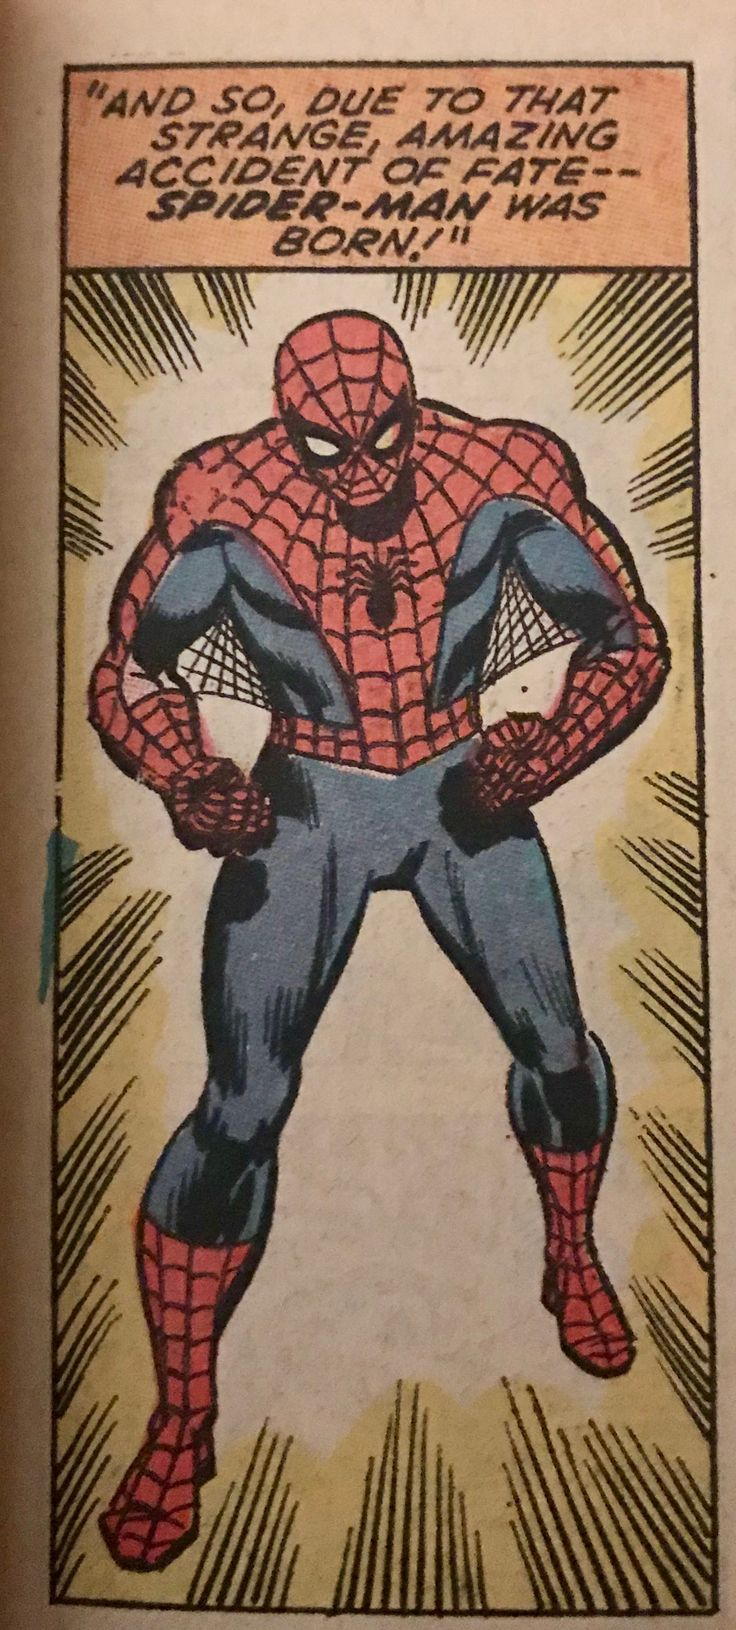 Art by John Romita and Sal Buscema 1971